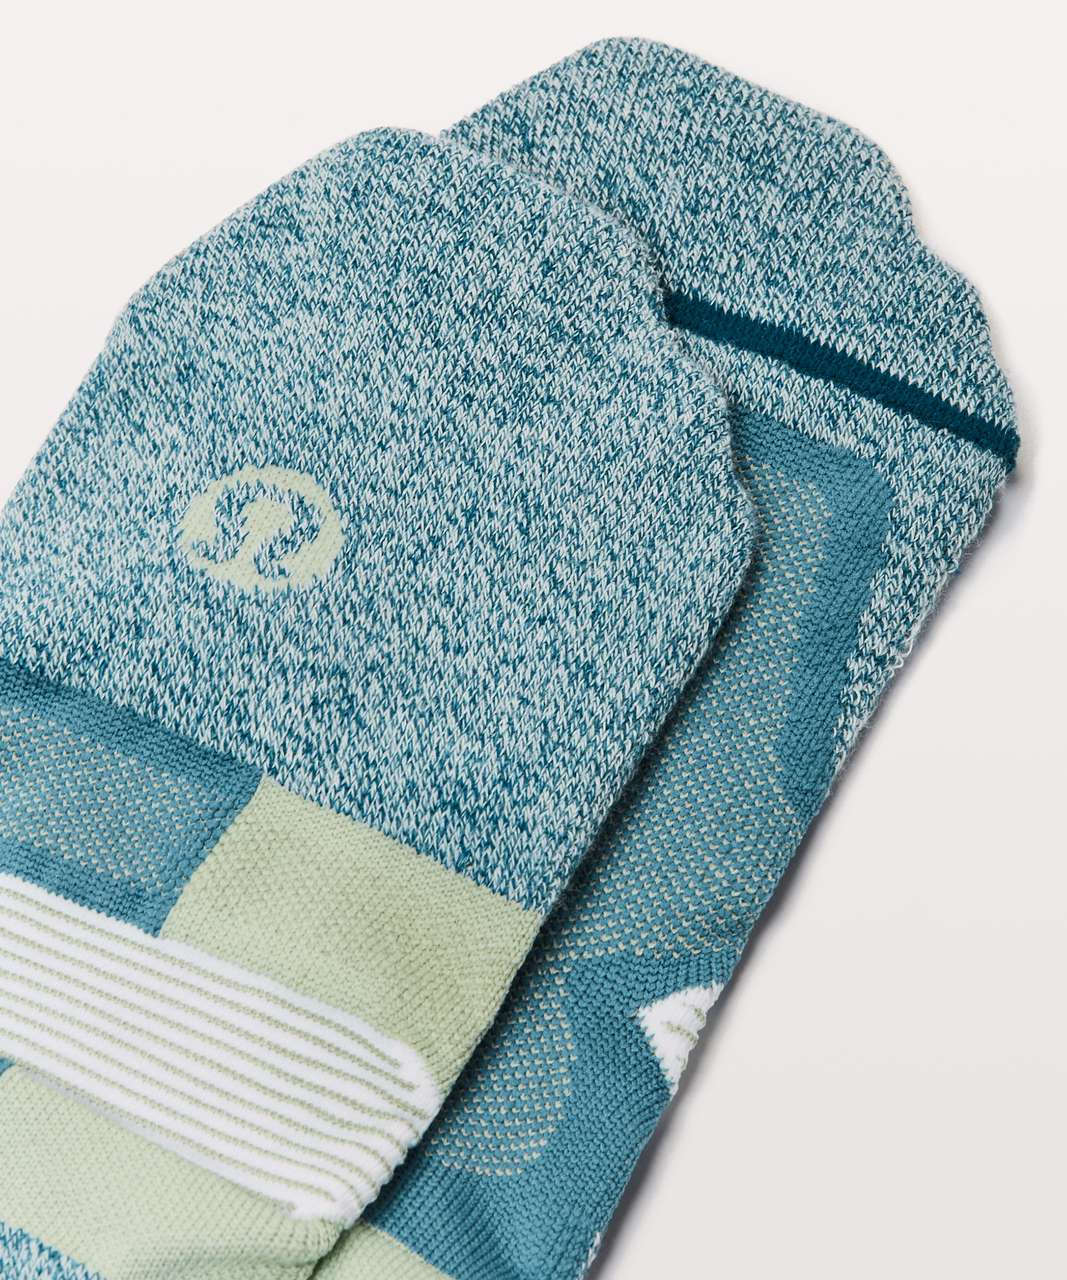 Lululemon Speed Sock *Silver - Julep / Persian Blue / White